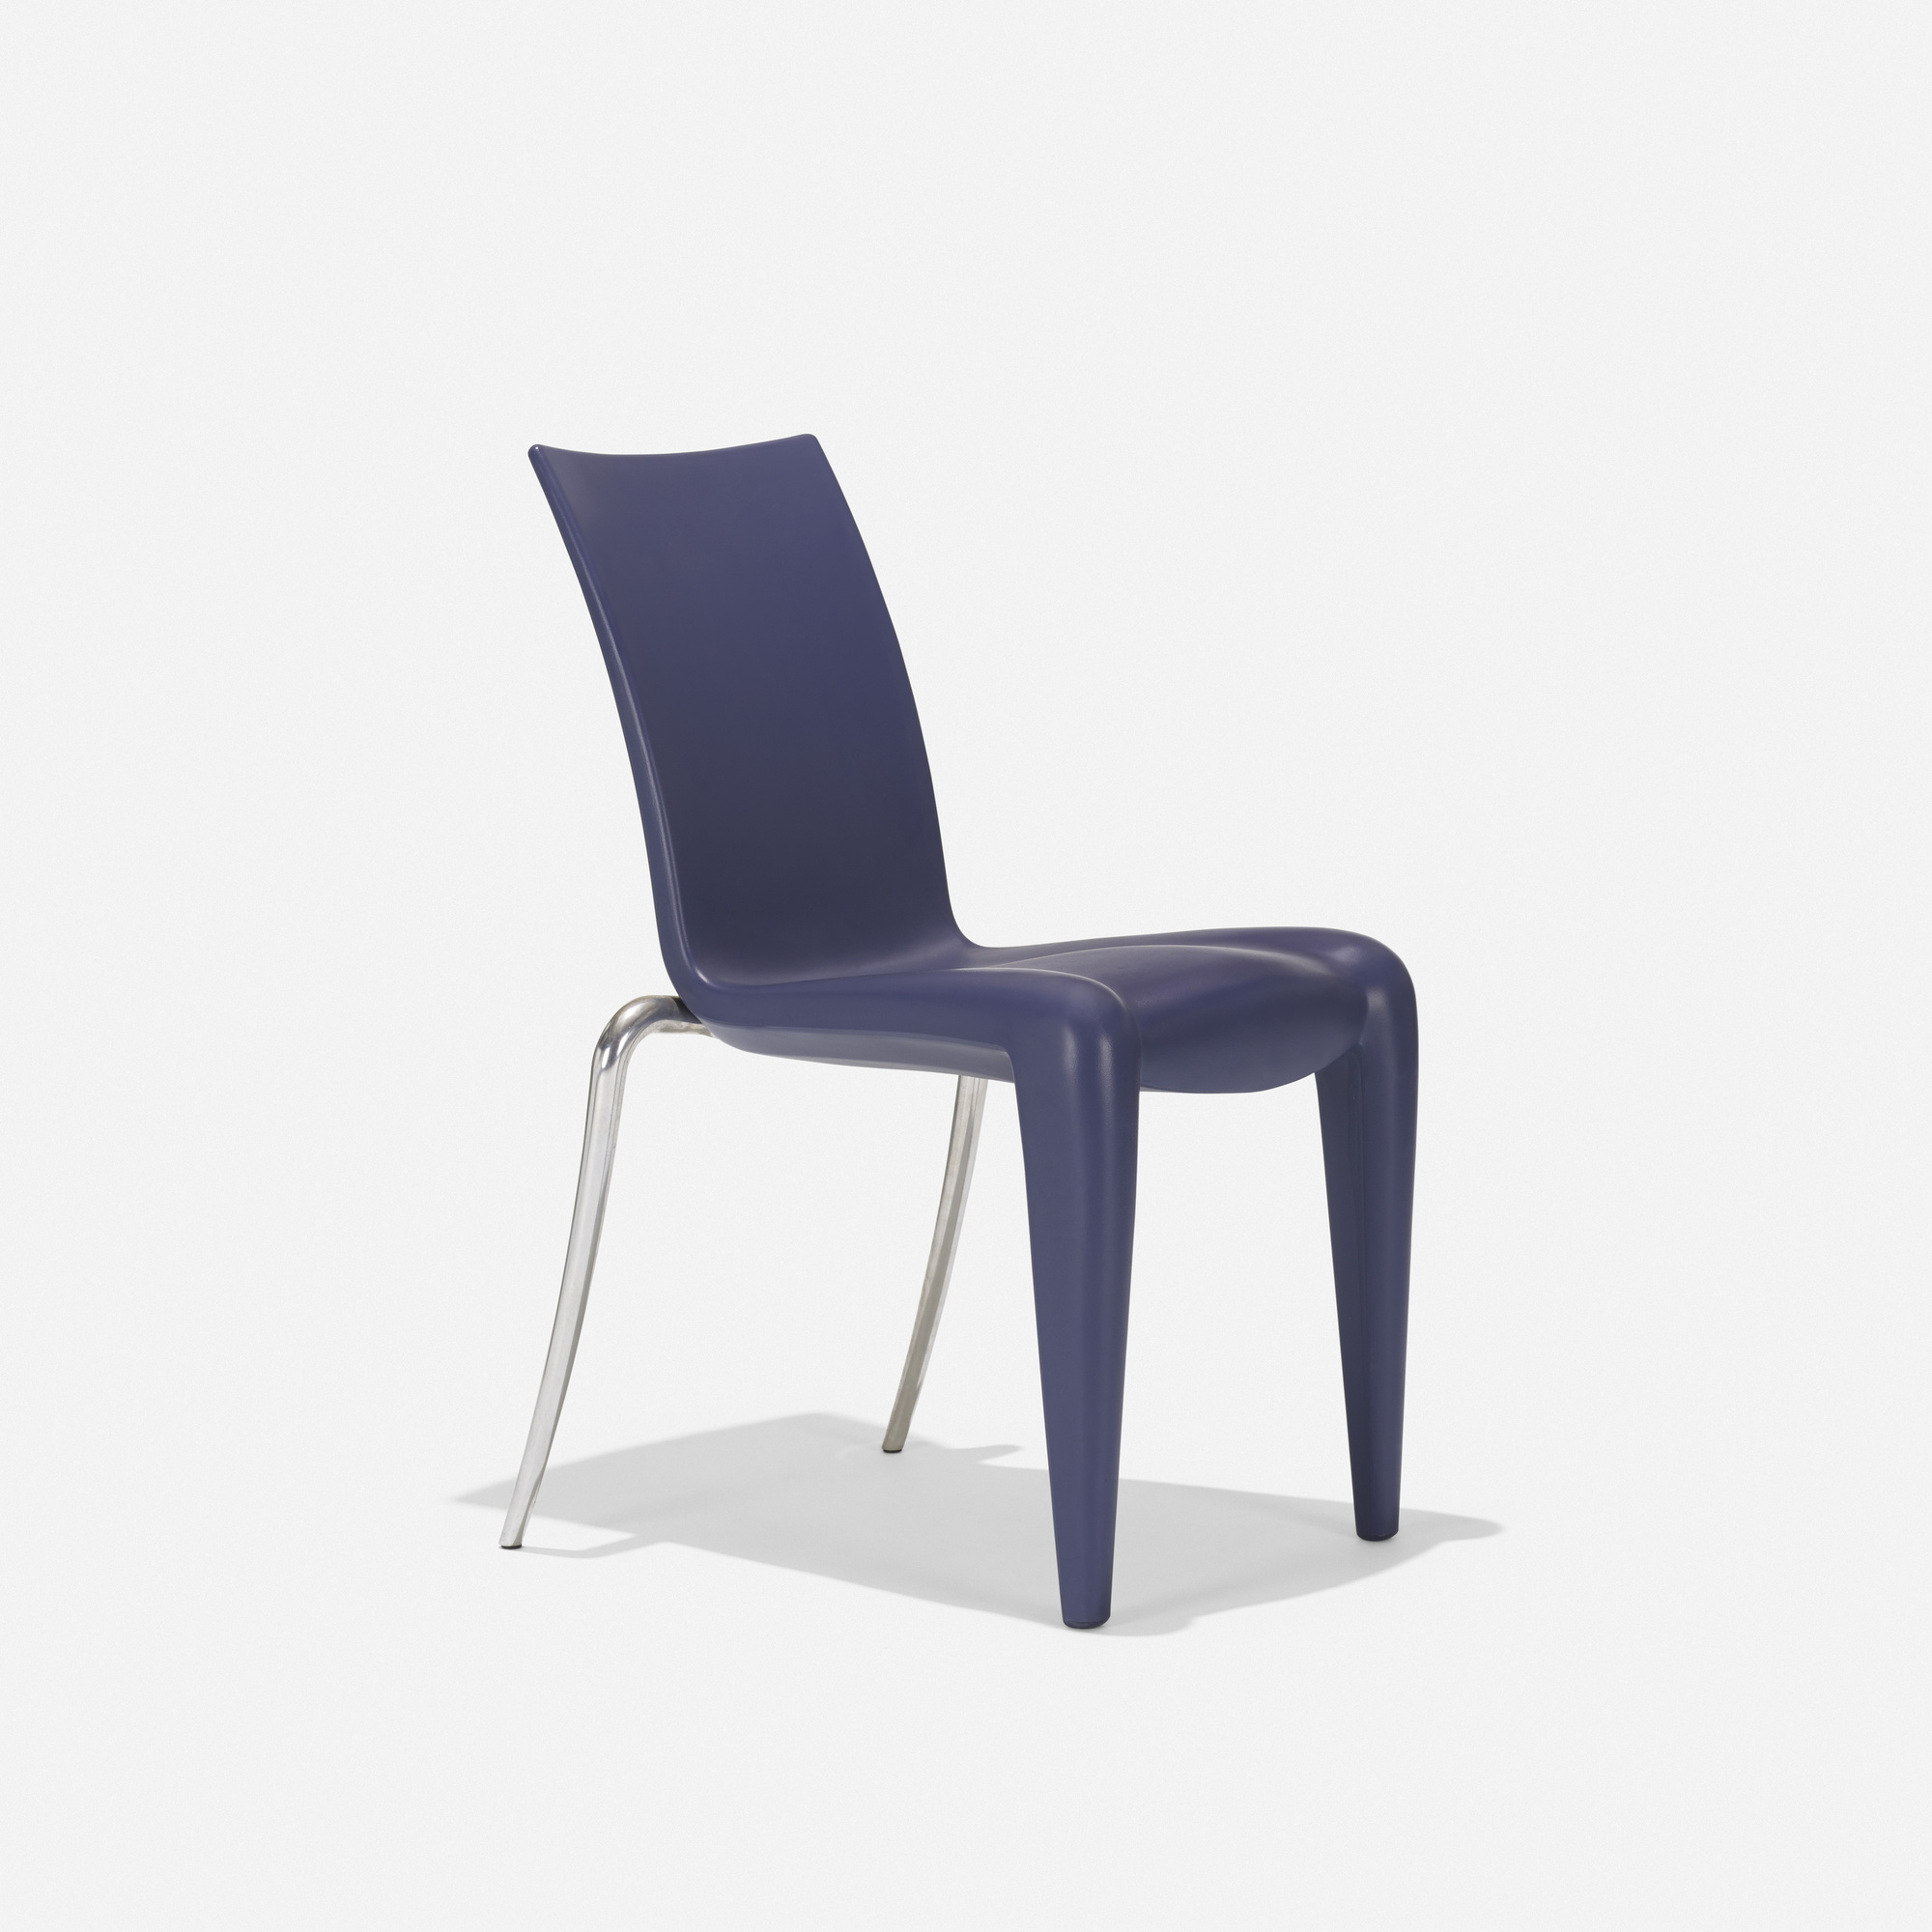 166: Philippe Starck / Louis 20 chair (1 of 4)